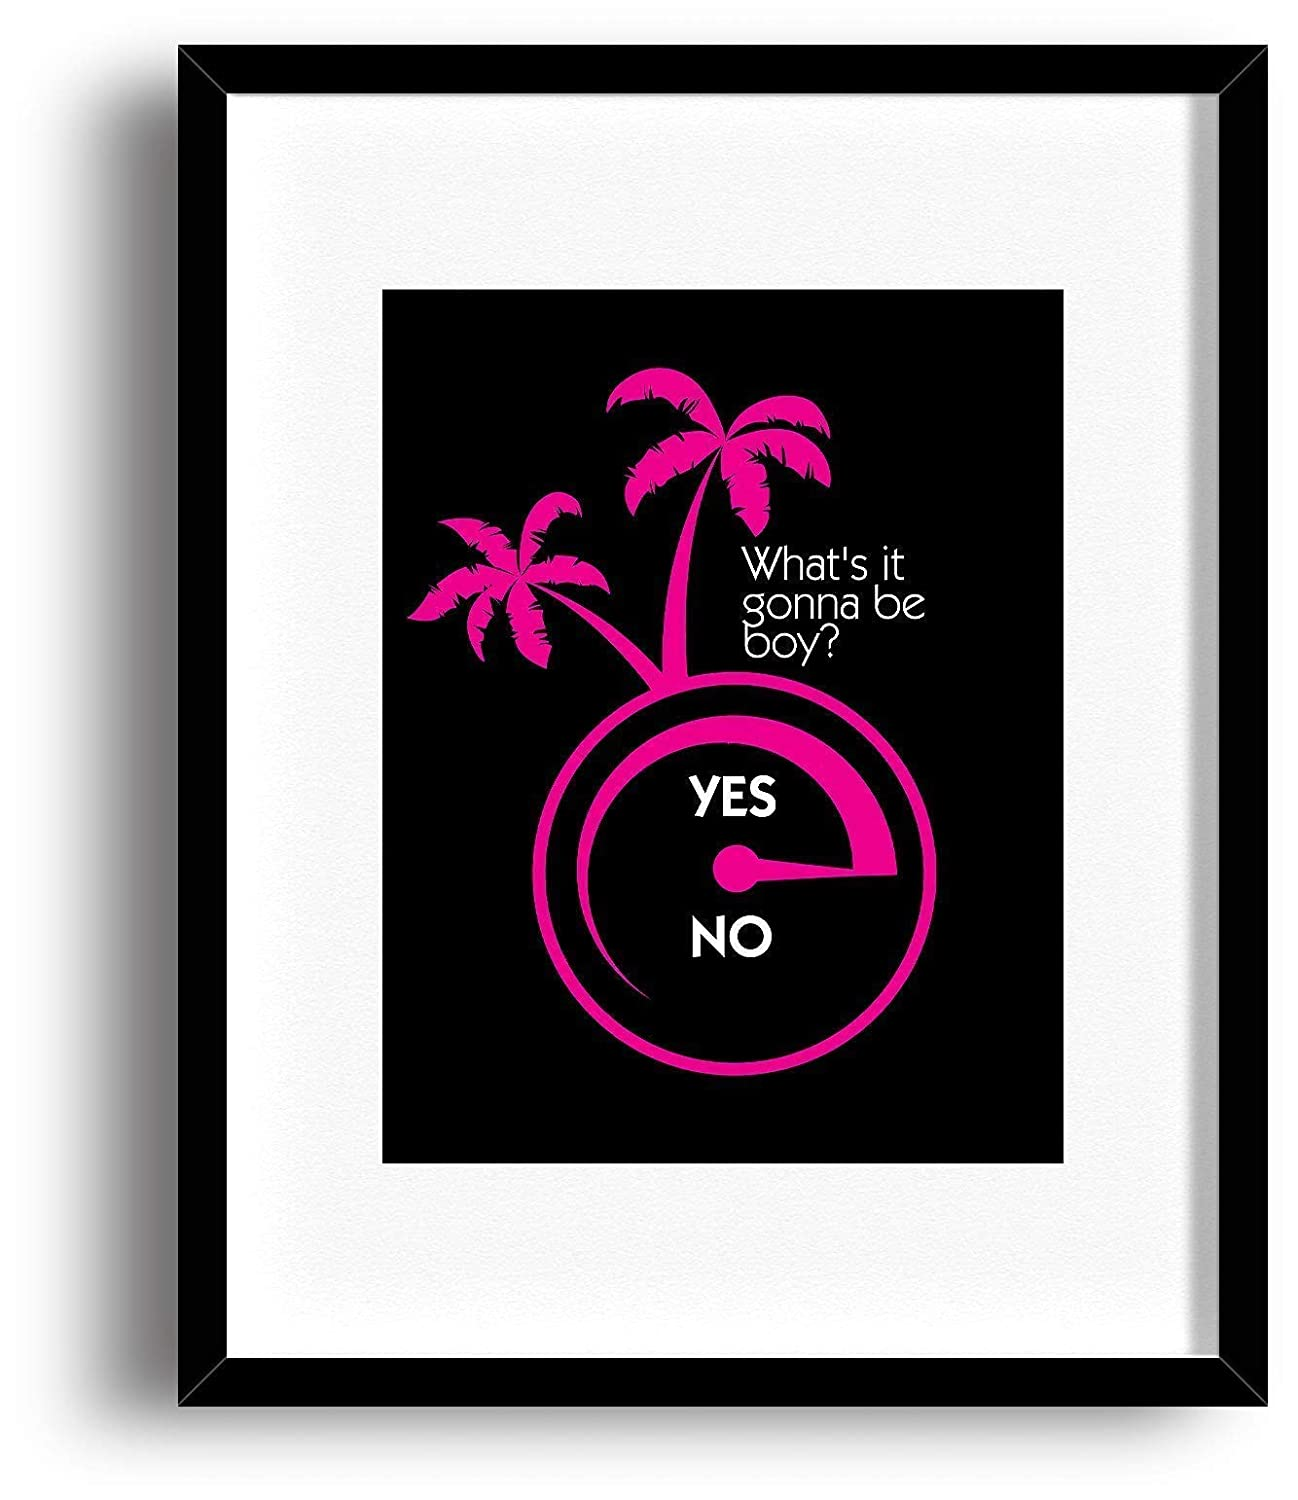 Paradise by the Dashboard by Meatloaf - Inspired Song Lyric Art Print - Music Wall Decor Memorabilia - Poster Birthday Gift Idea